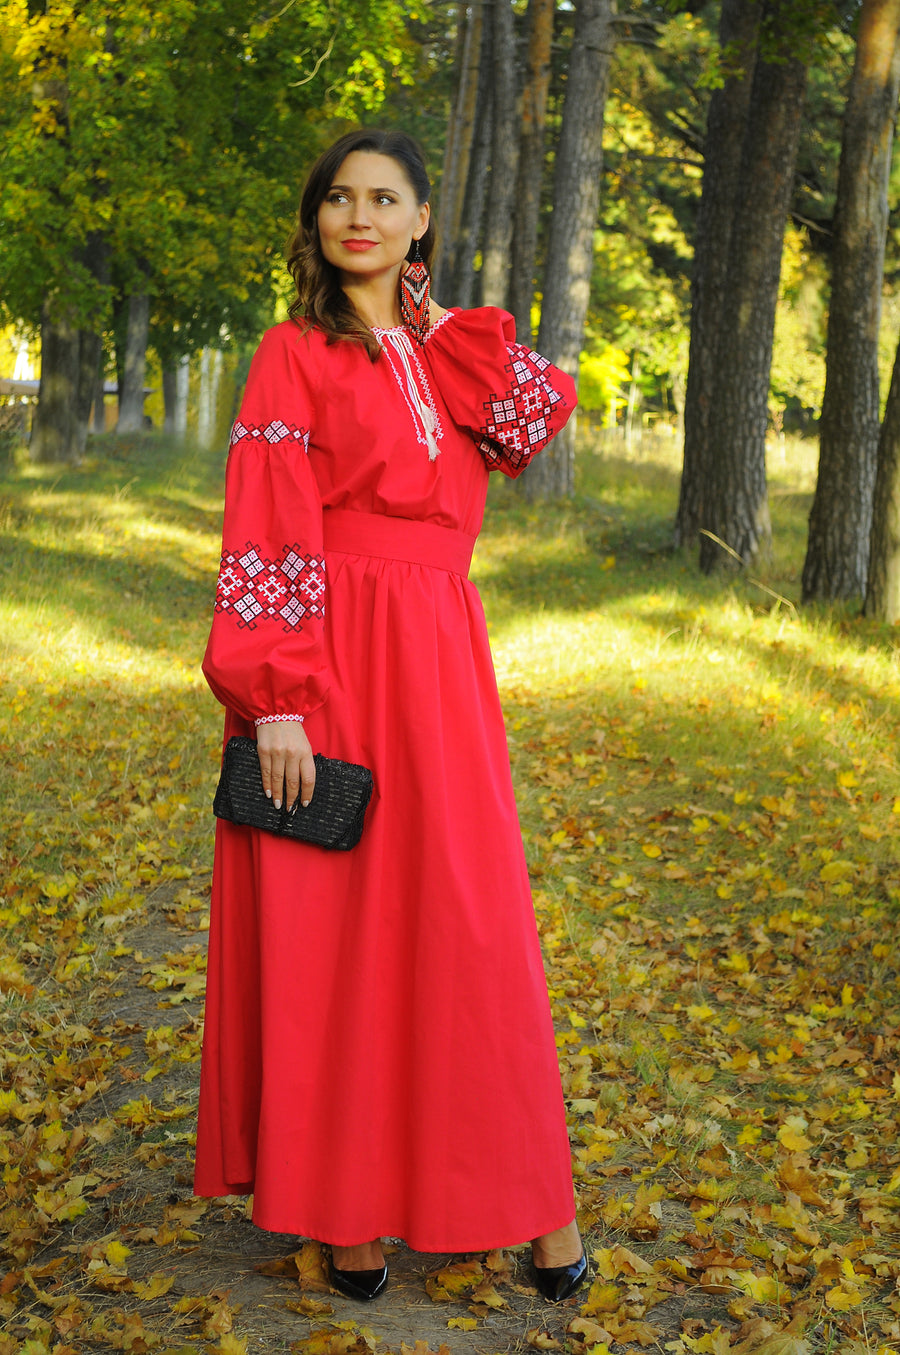 Luxury red evening dress with embroidery